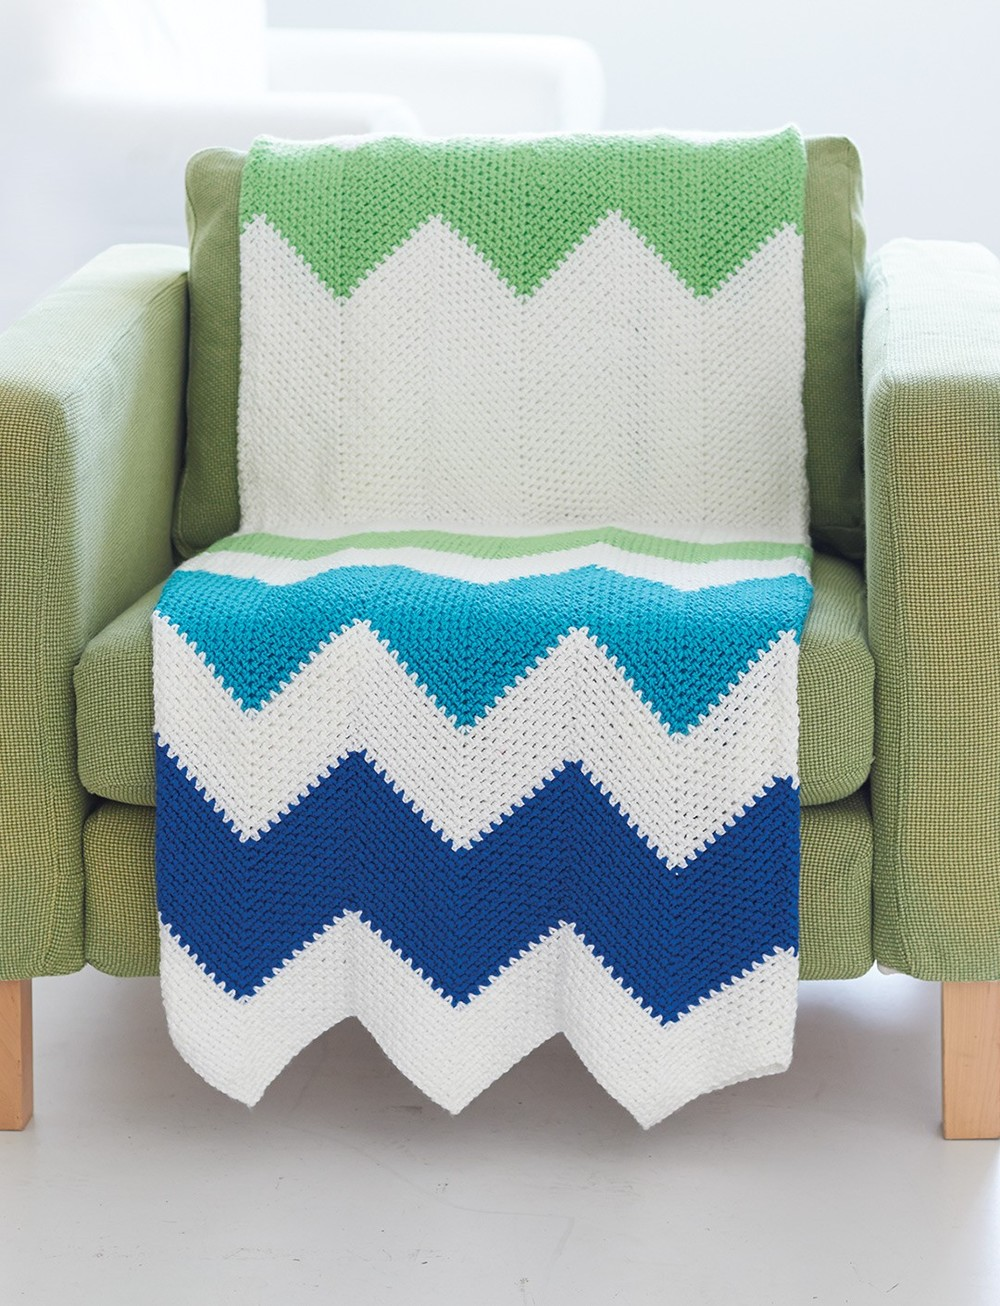 Crochet Patterns Zig Zag Blanket : Contemporary Zig Zag Throw AllFreeCrochetAfghanPatterns.com